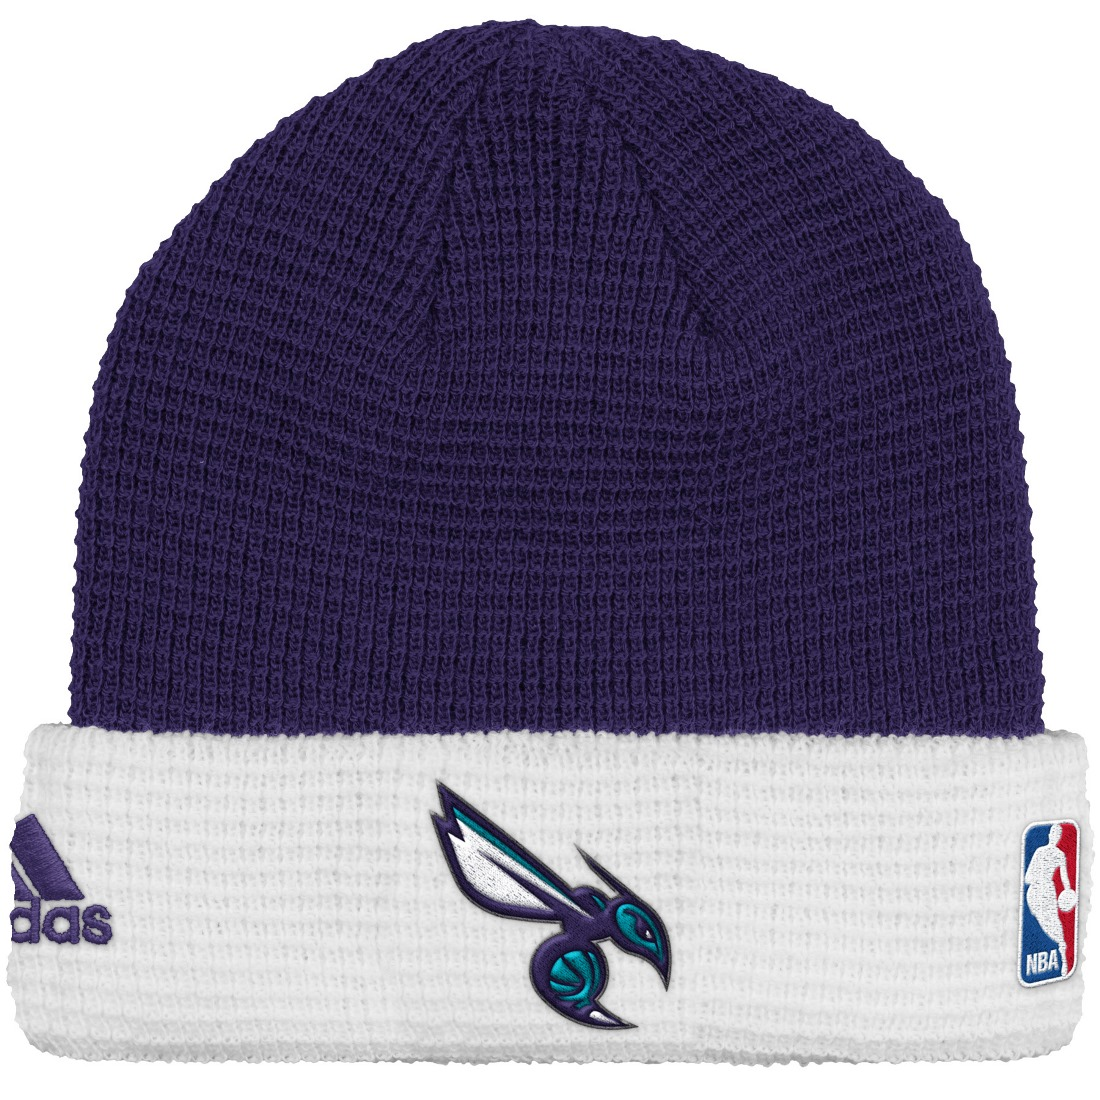 Charlotte Hornets Adidas NBA 2015 Authentic Team Cuffed Knit Hat